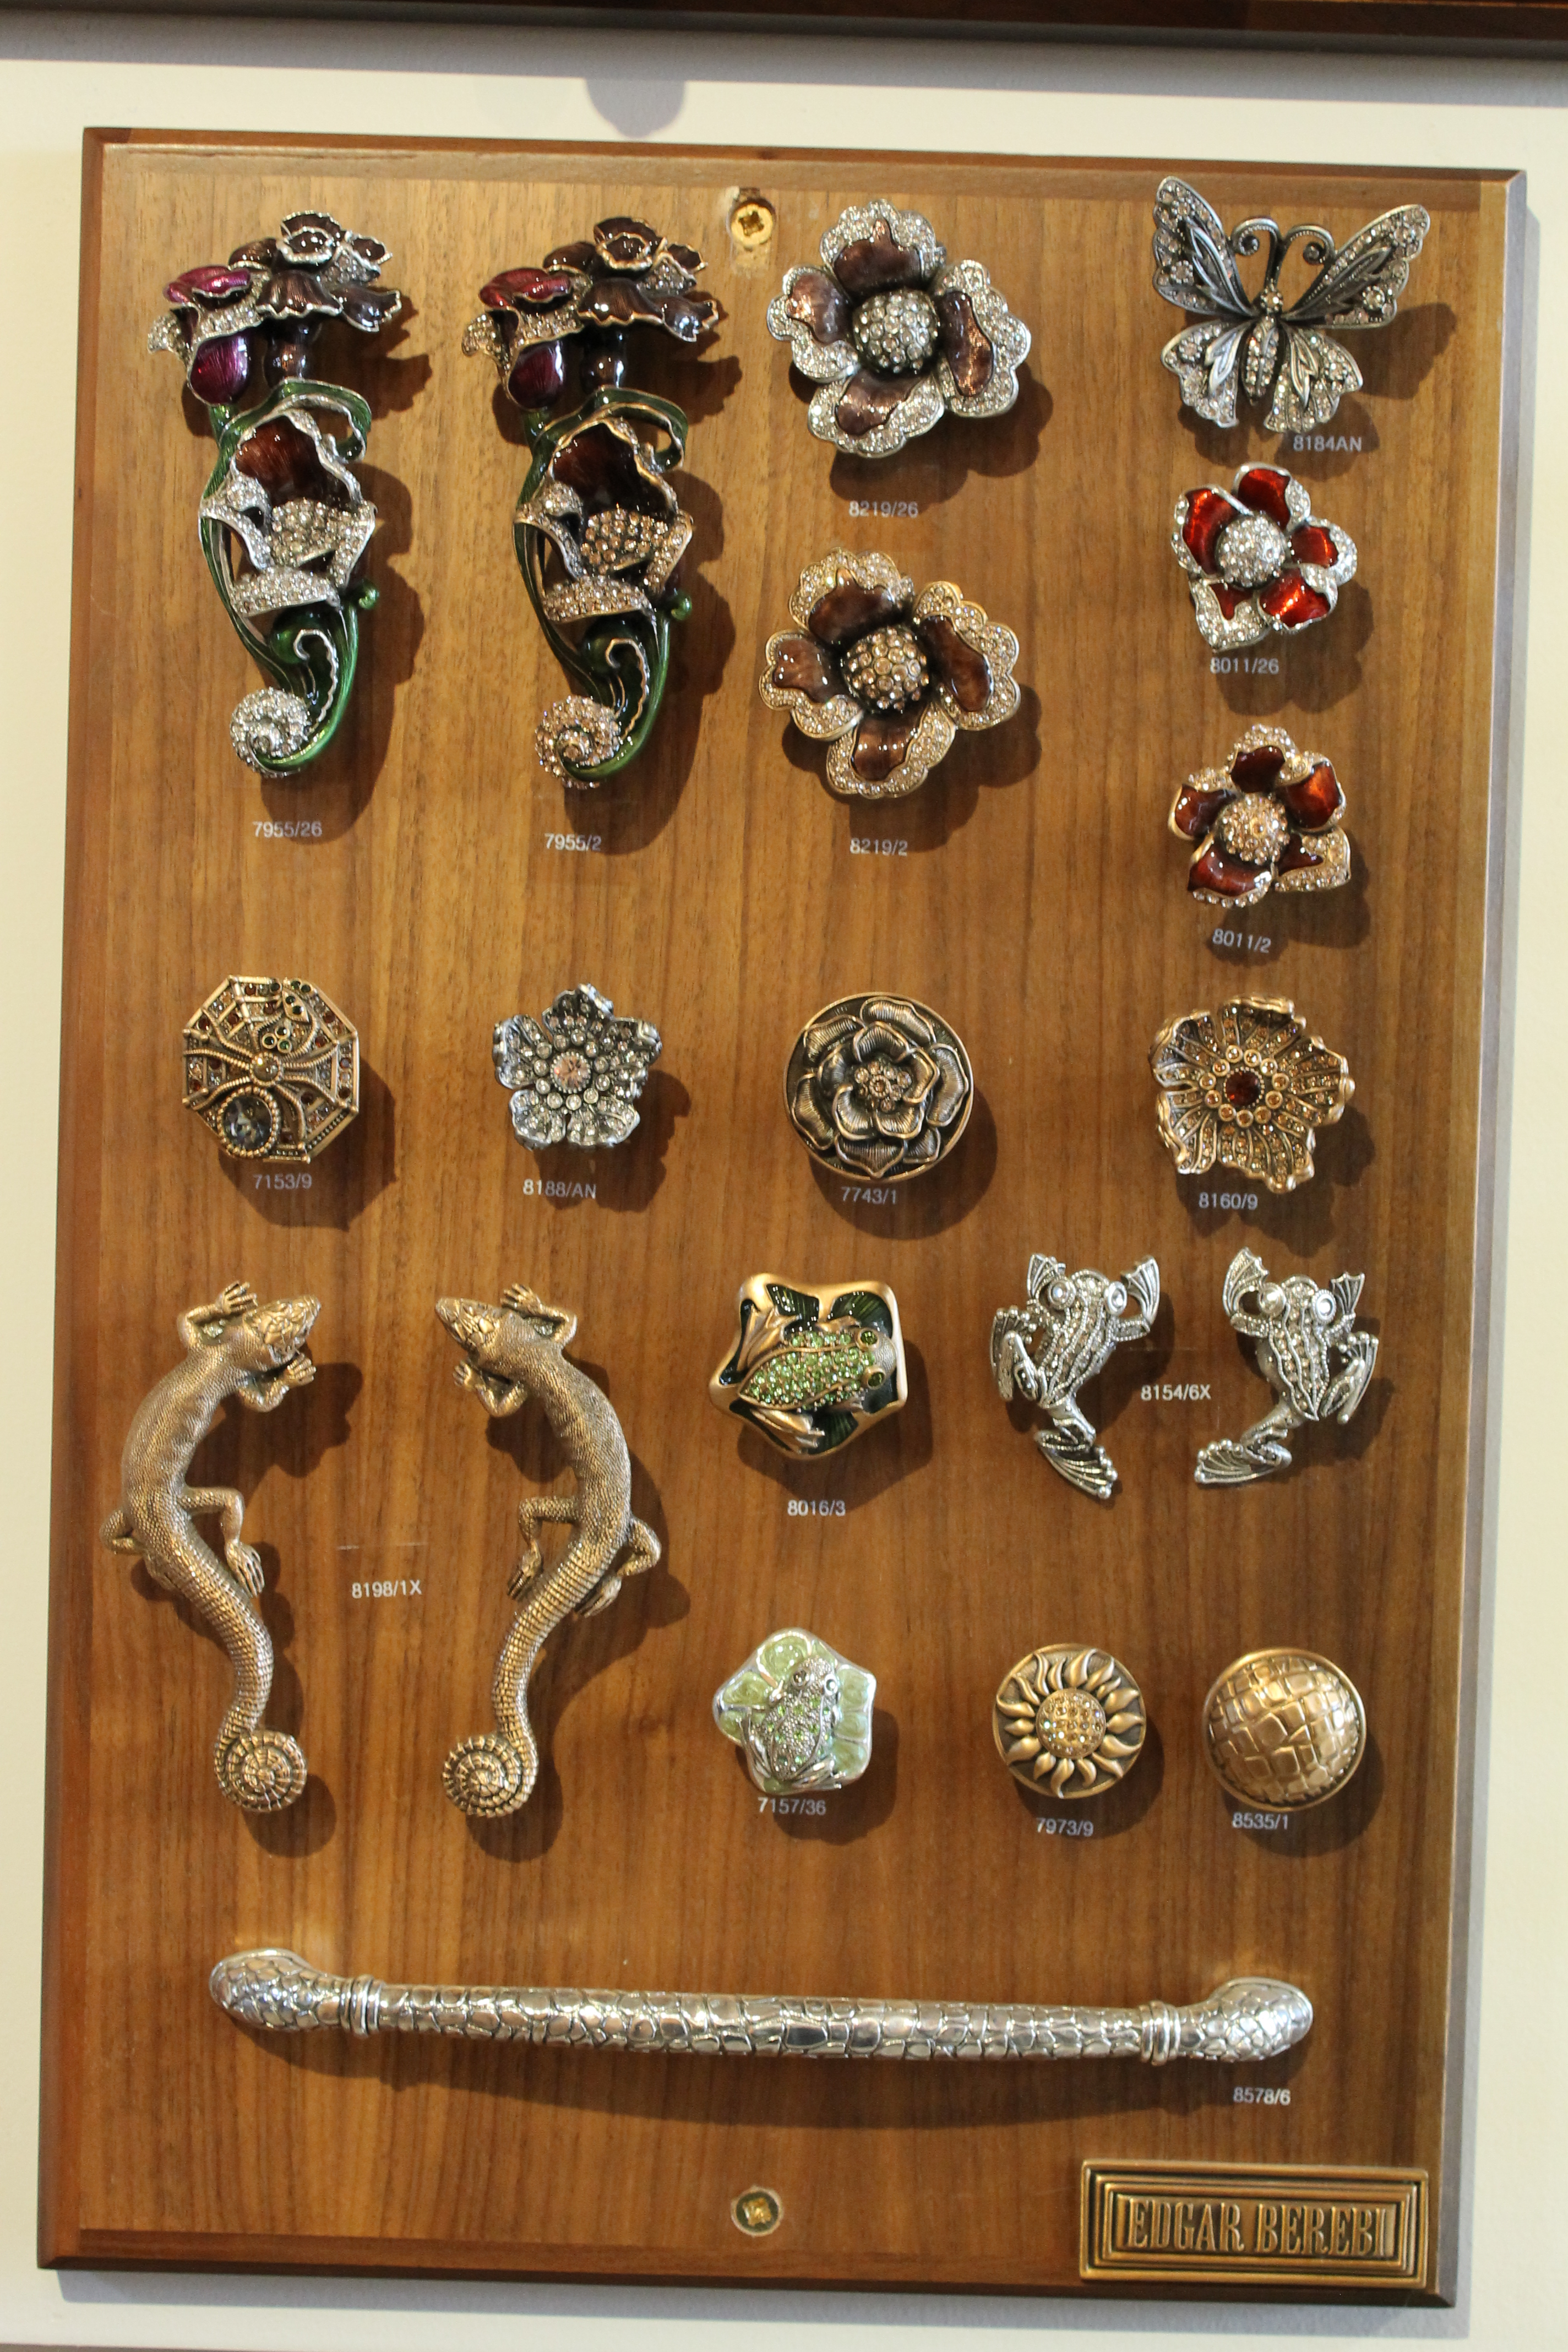 Our beautiful kitchen door knobs are works of art